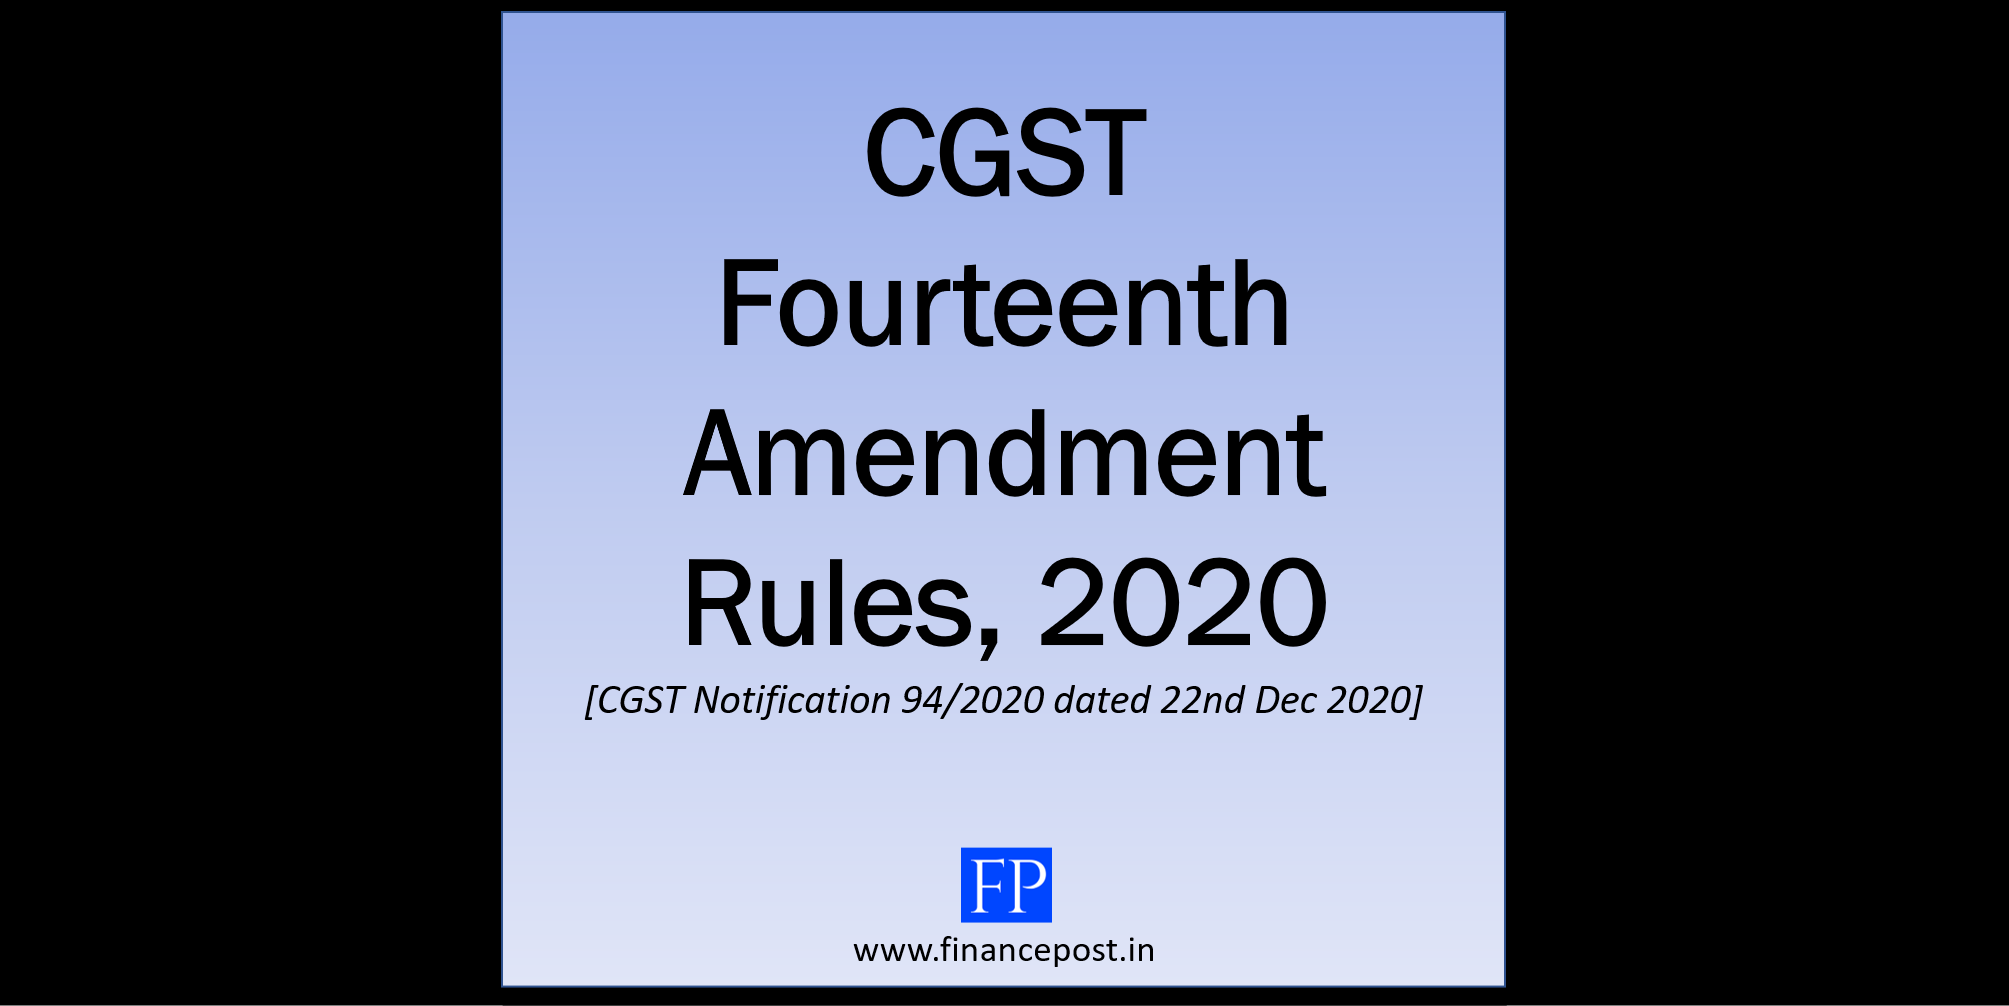 CGST Fourteenth Amendment Rules, 2020